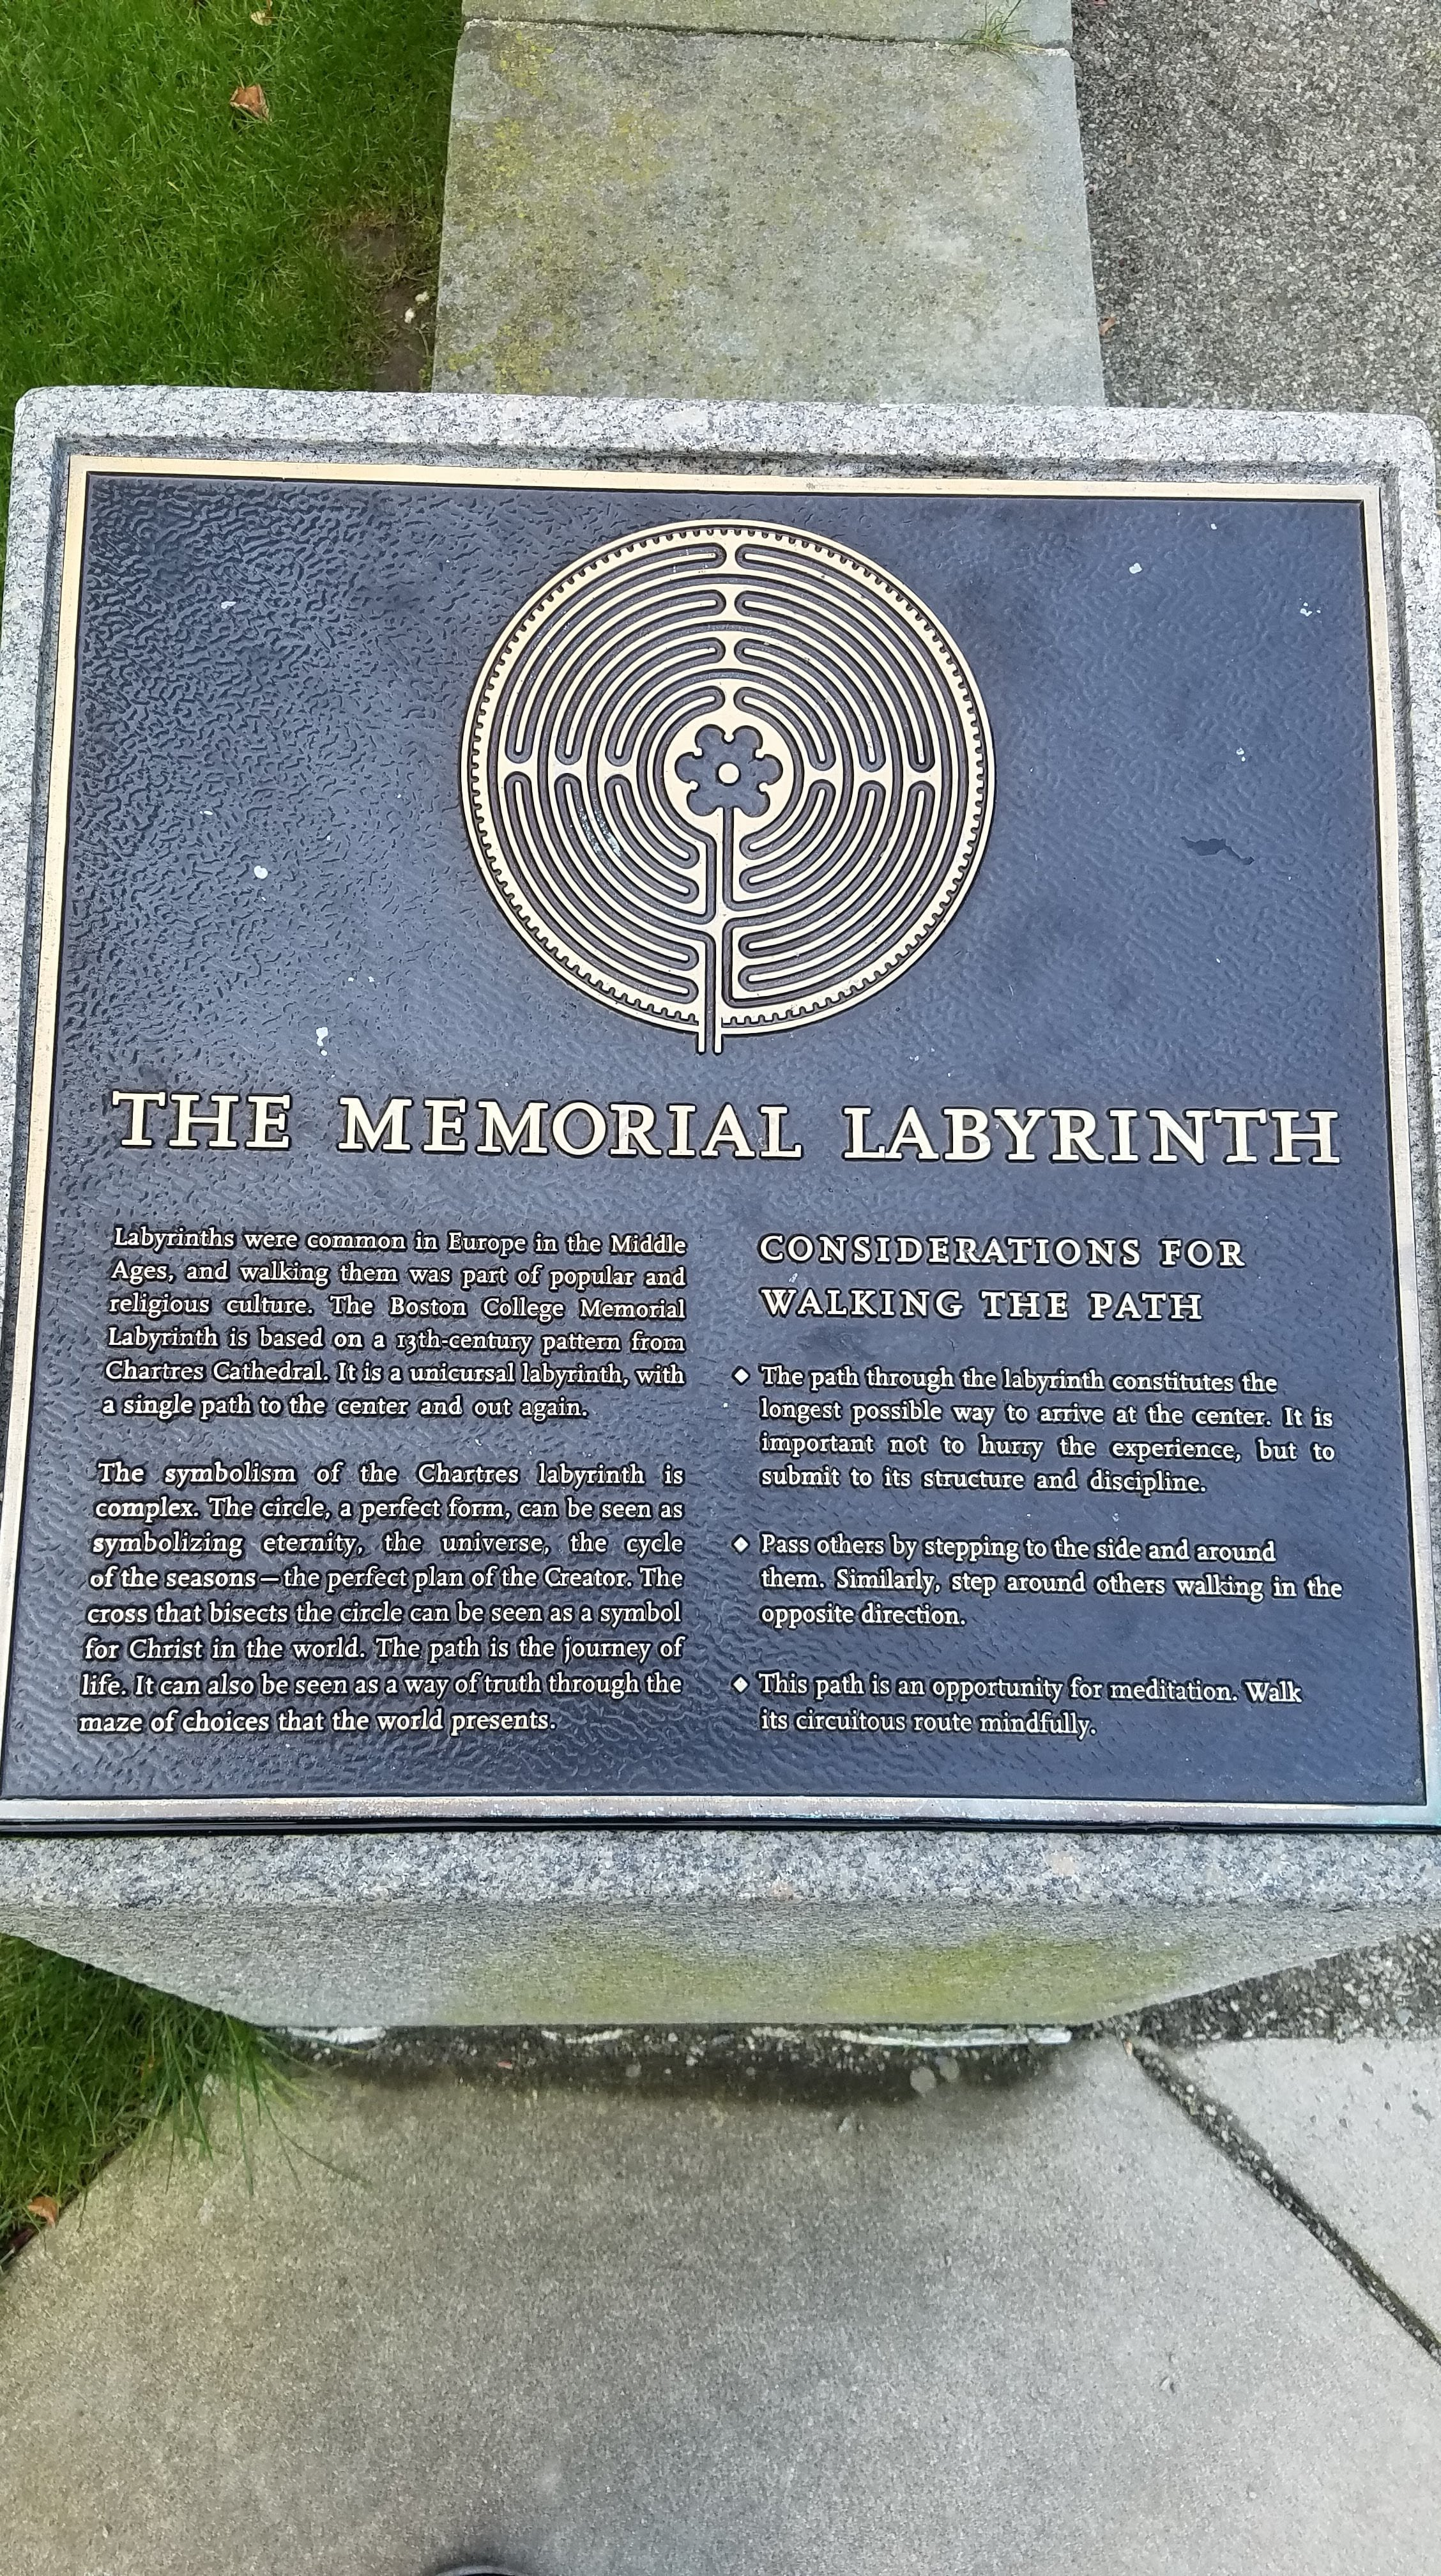 Plaque on the history of labyrinths from medieval times and their significance